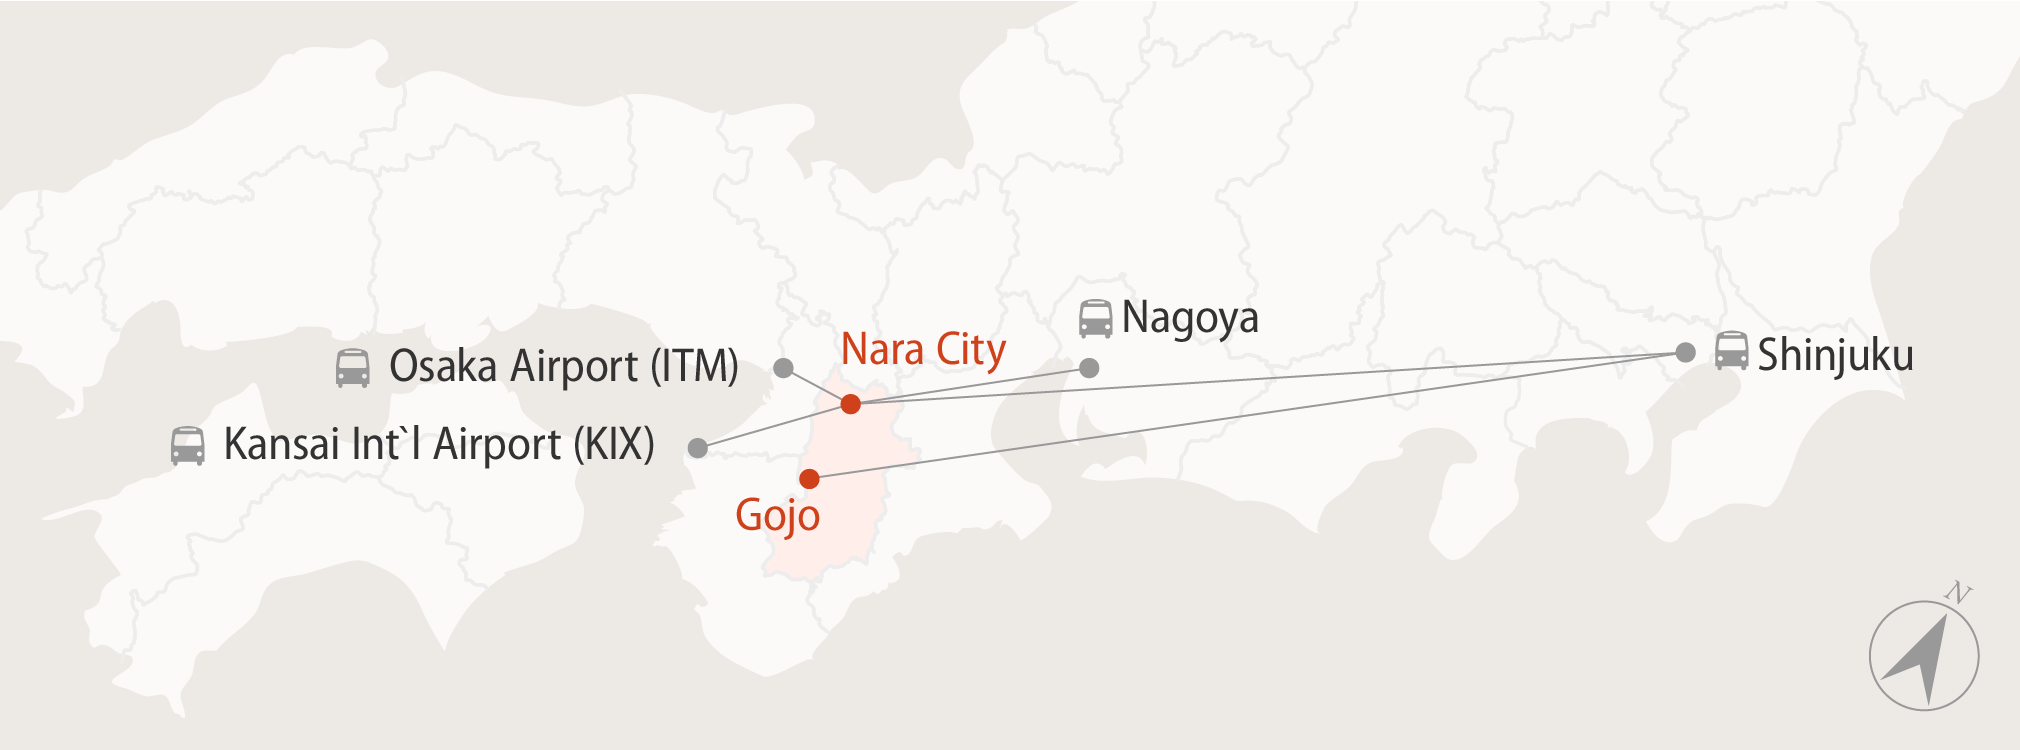 Diagram showing how to get to Nara by bus from Tokyo and Kansai area airports